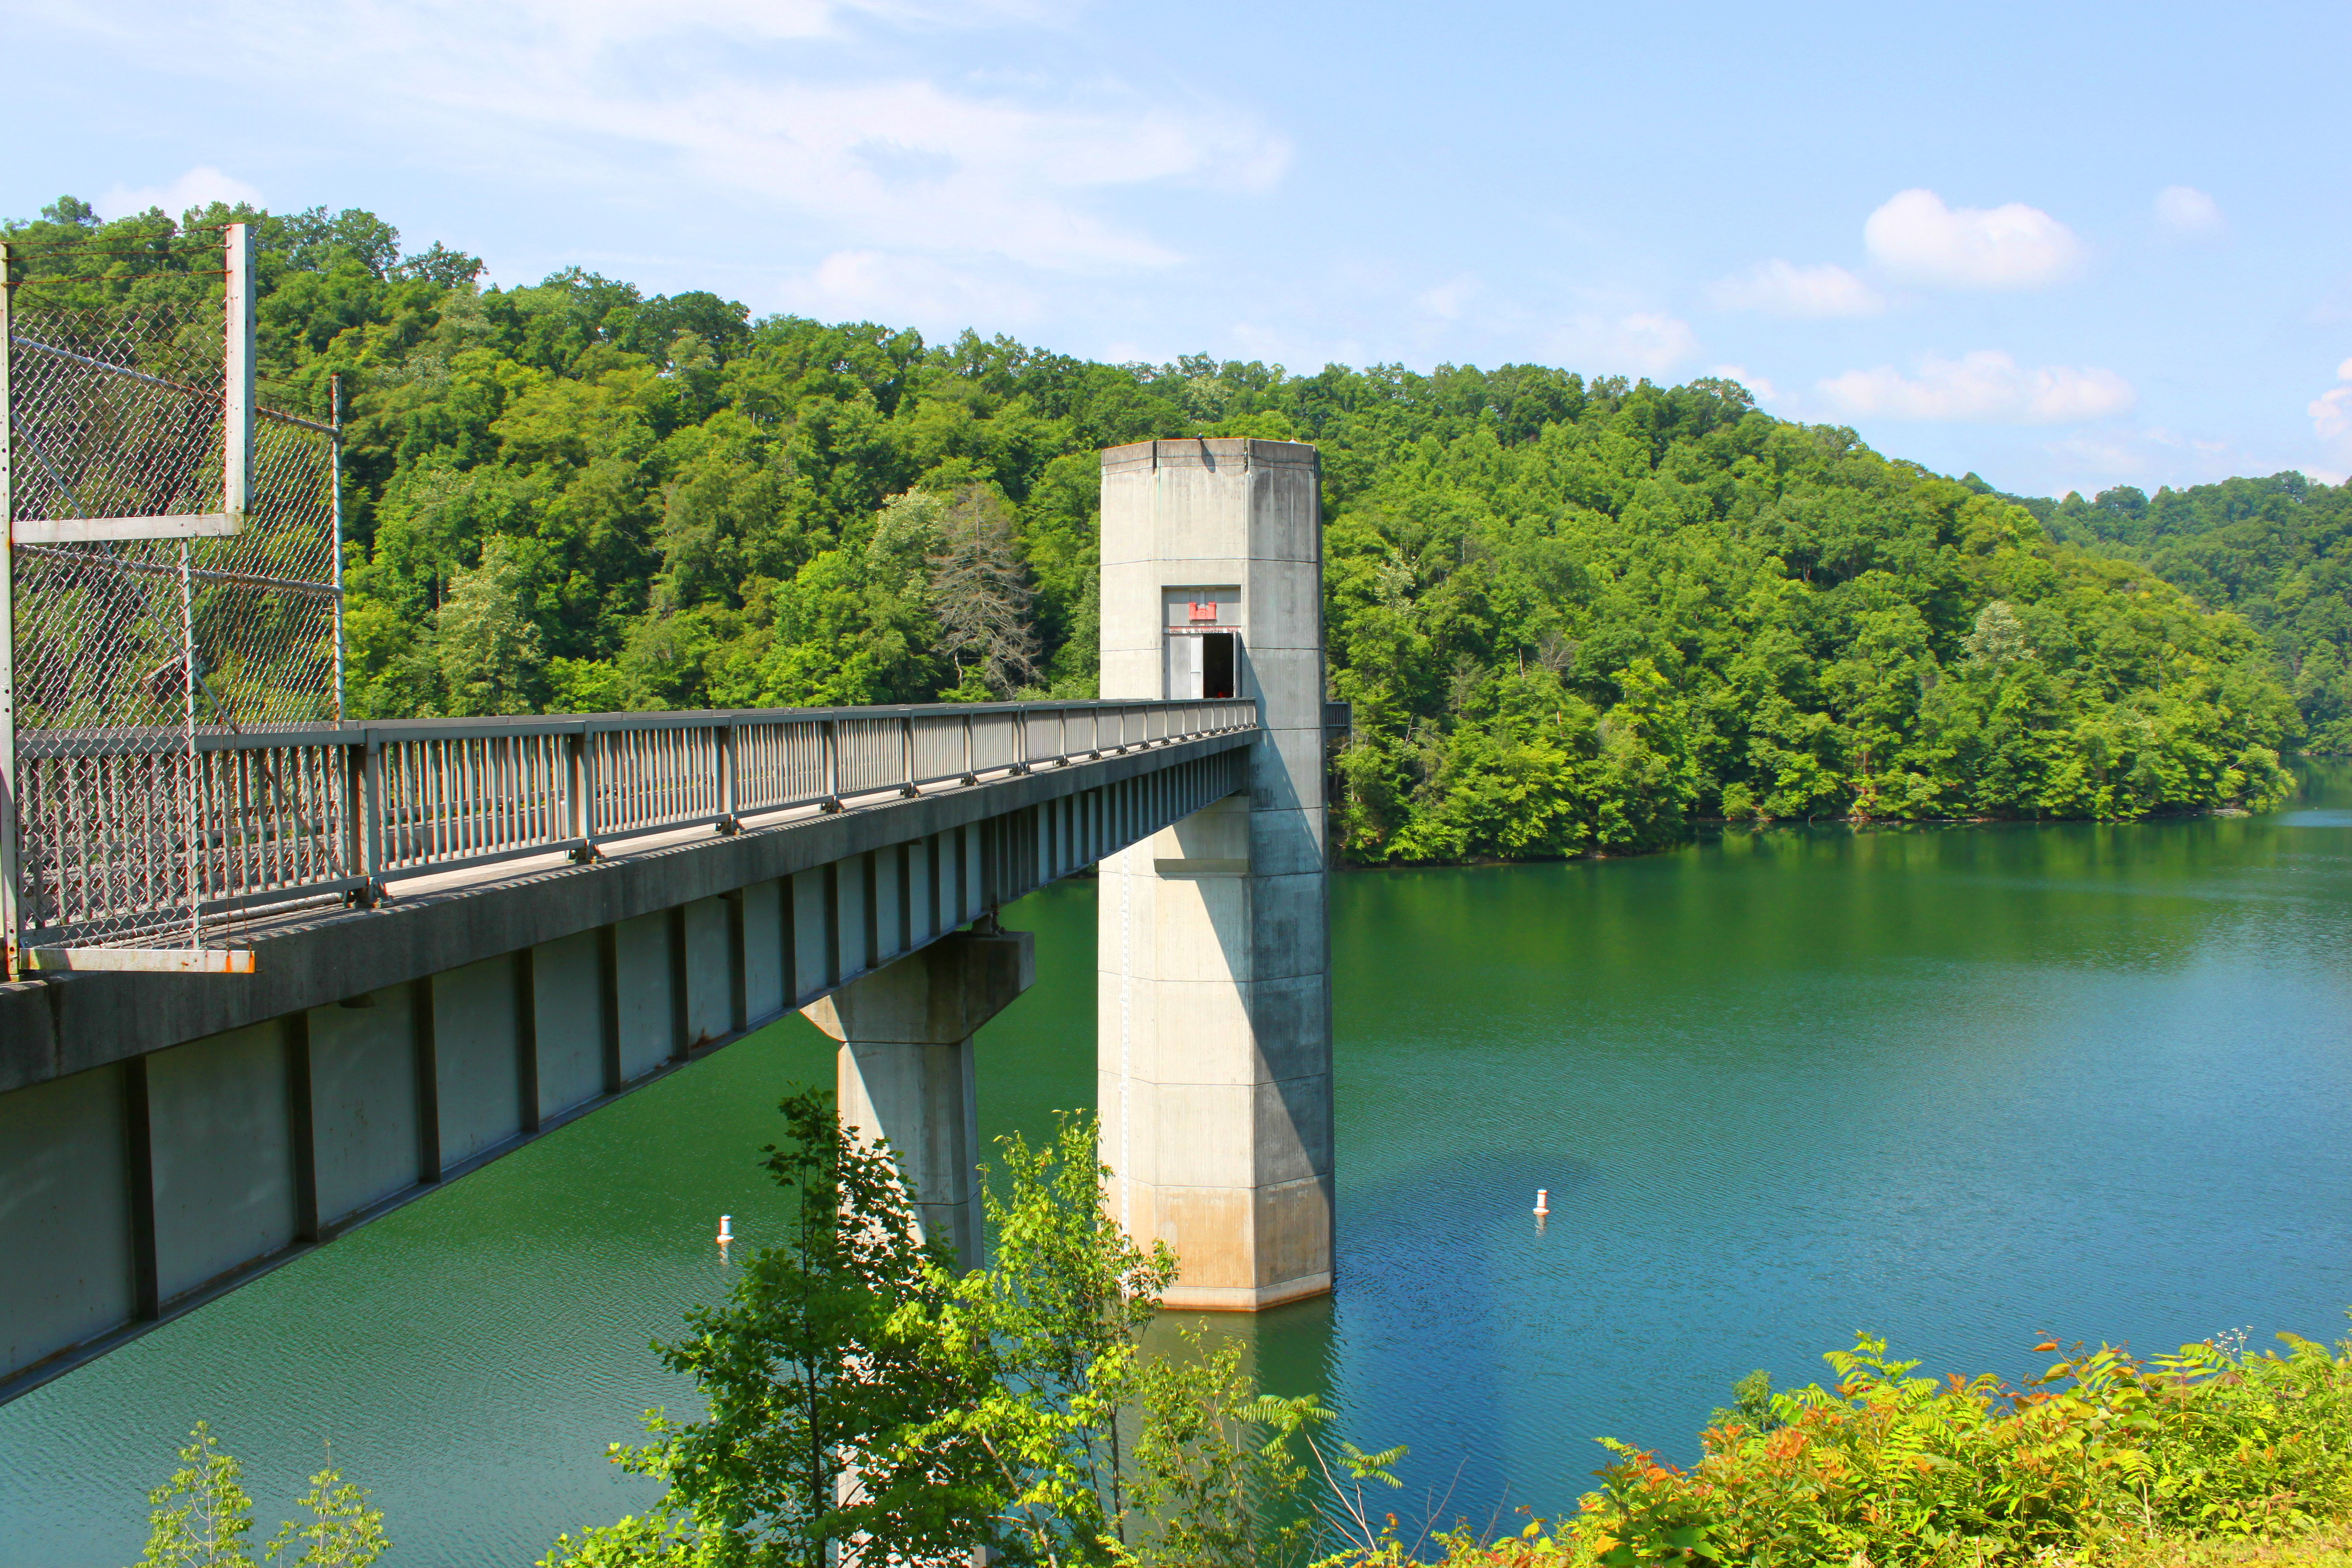 John W. Flannagan Dam and Reservoir